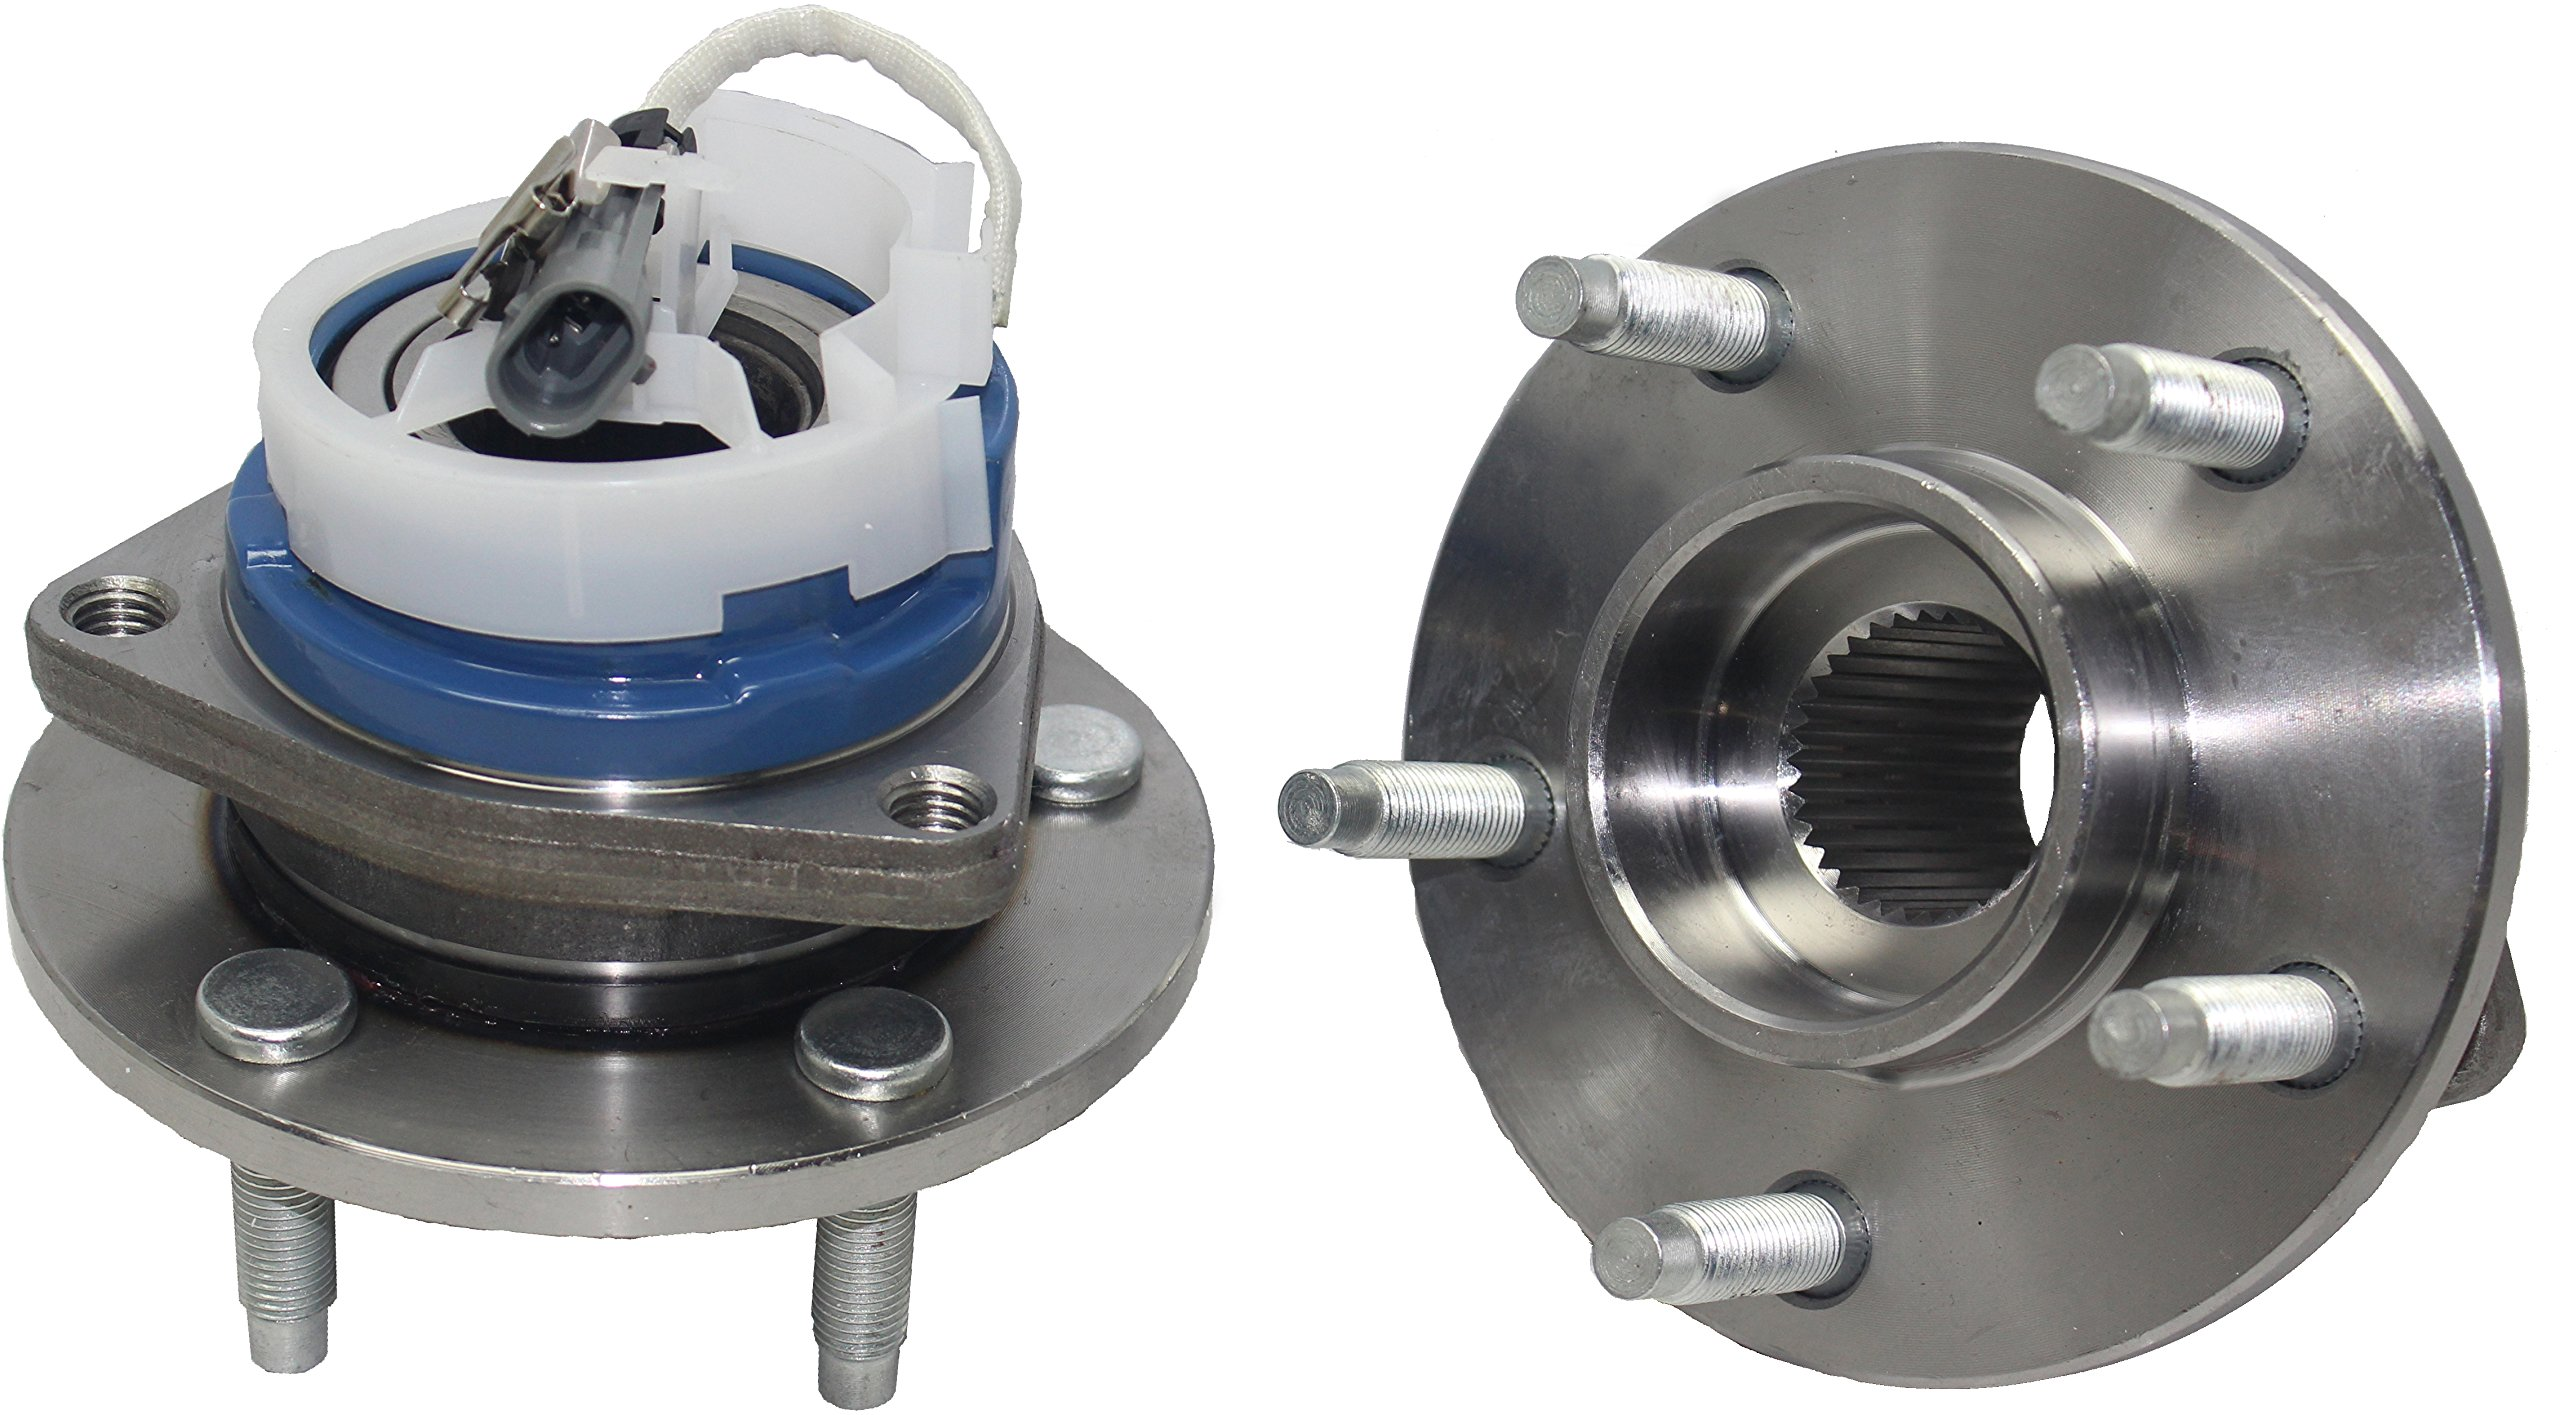 Brand New (Both) Front Wheel Hub and Bearing Assembly for Buick, Cadillac, Chevy, Oldsmobile, Pontiac 5 Lug W/ABS (Pair) 513179 x 2 by Detroit Axle